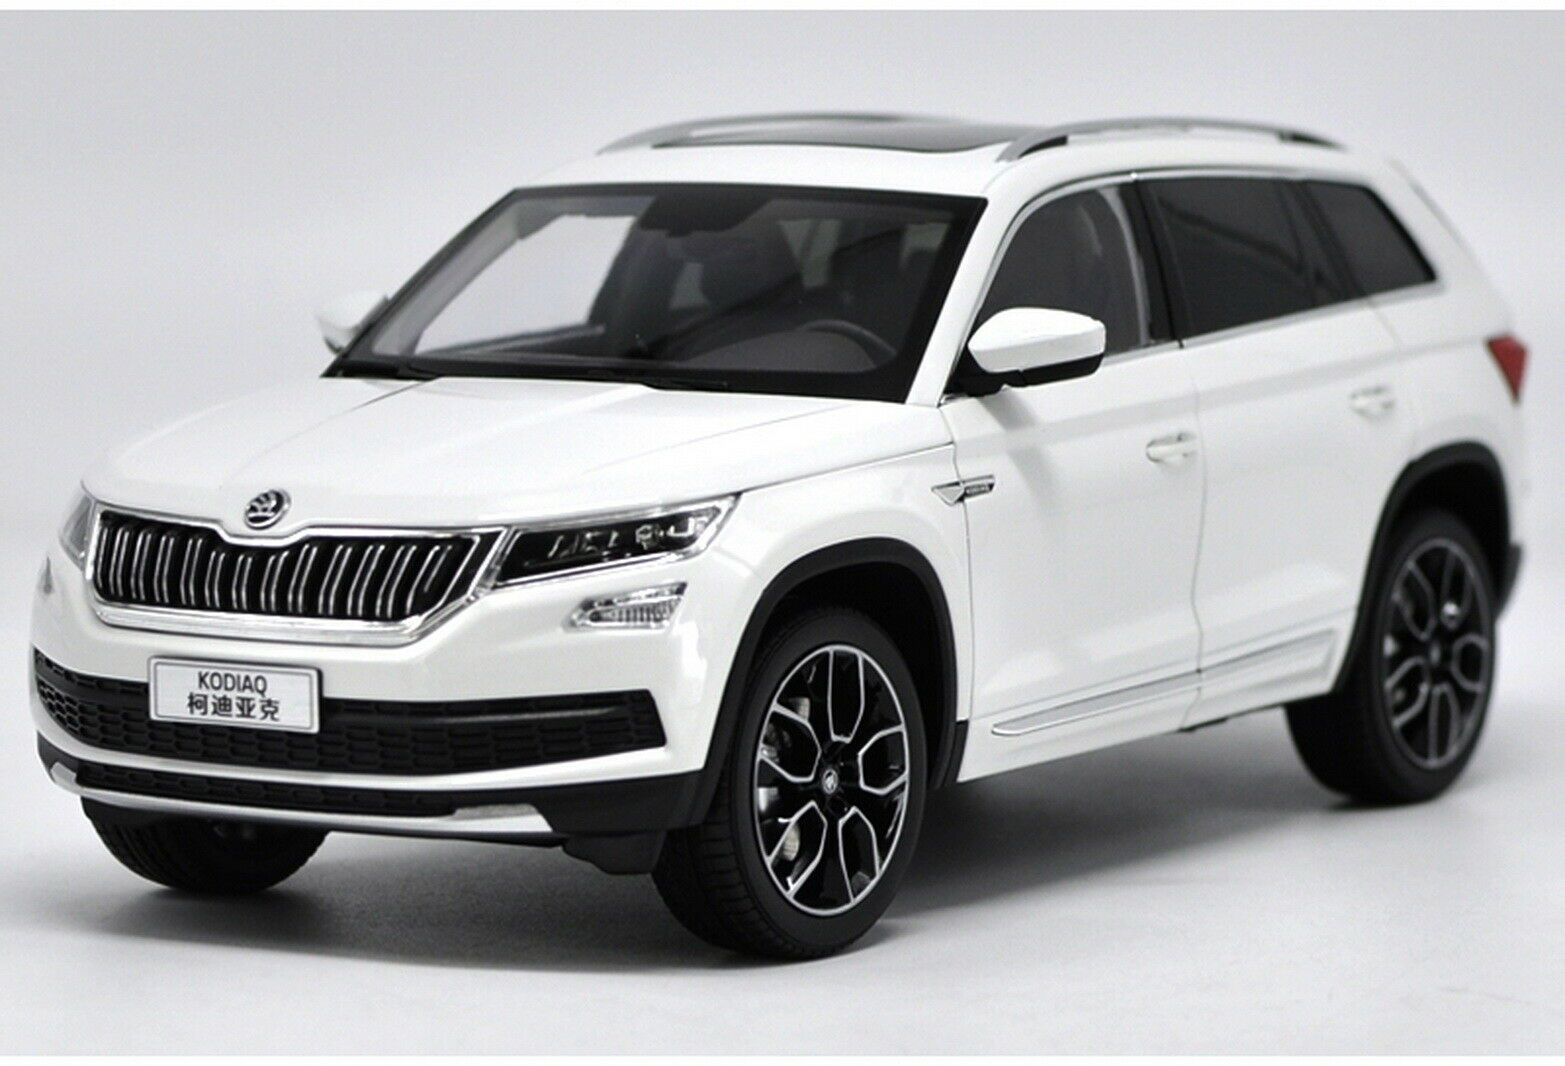 1 18 VW Volkswagen Skoda KODIAQ SUV White DieCast Car Model Toy Collection